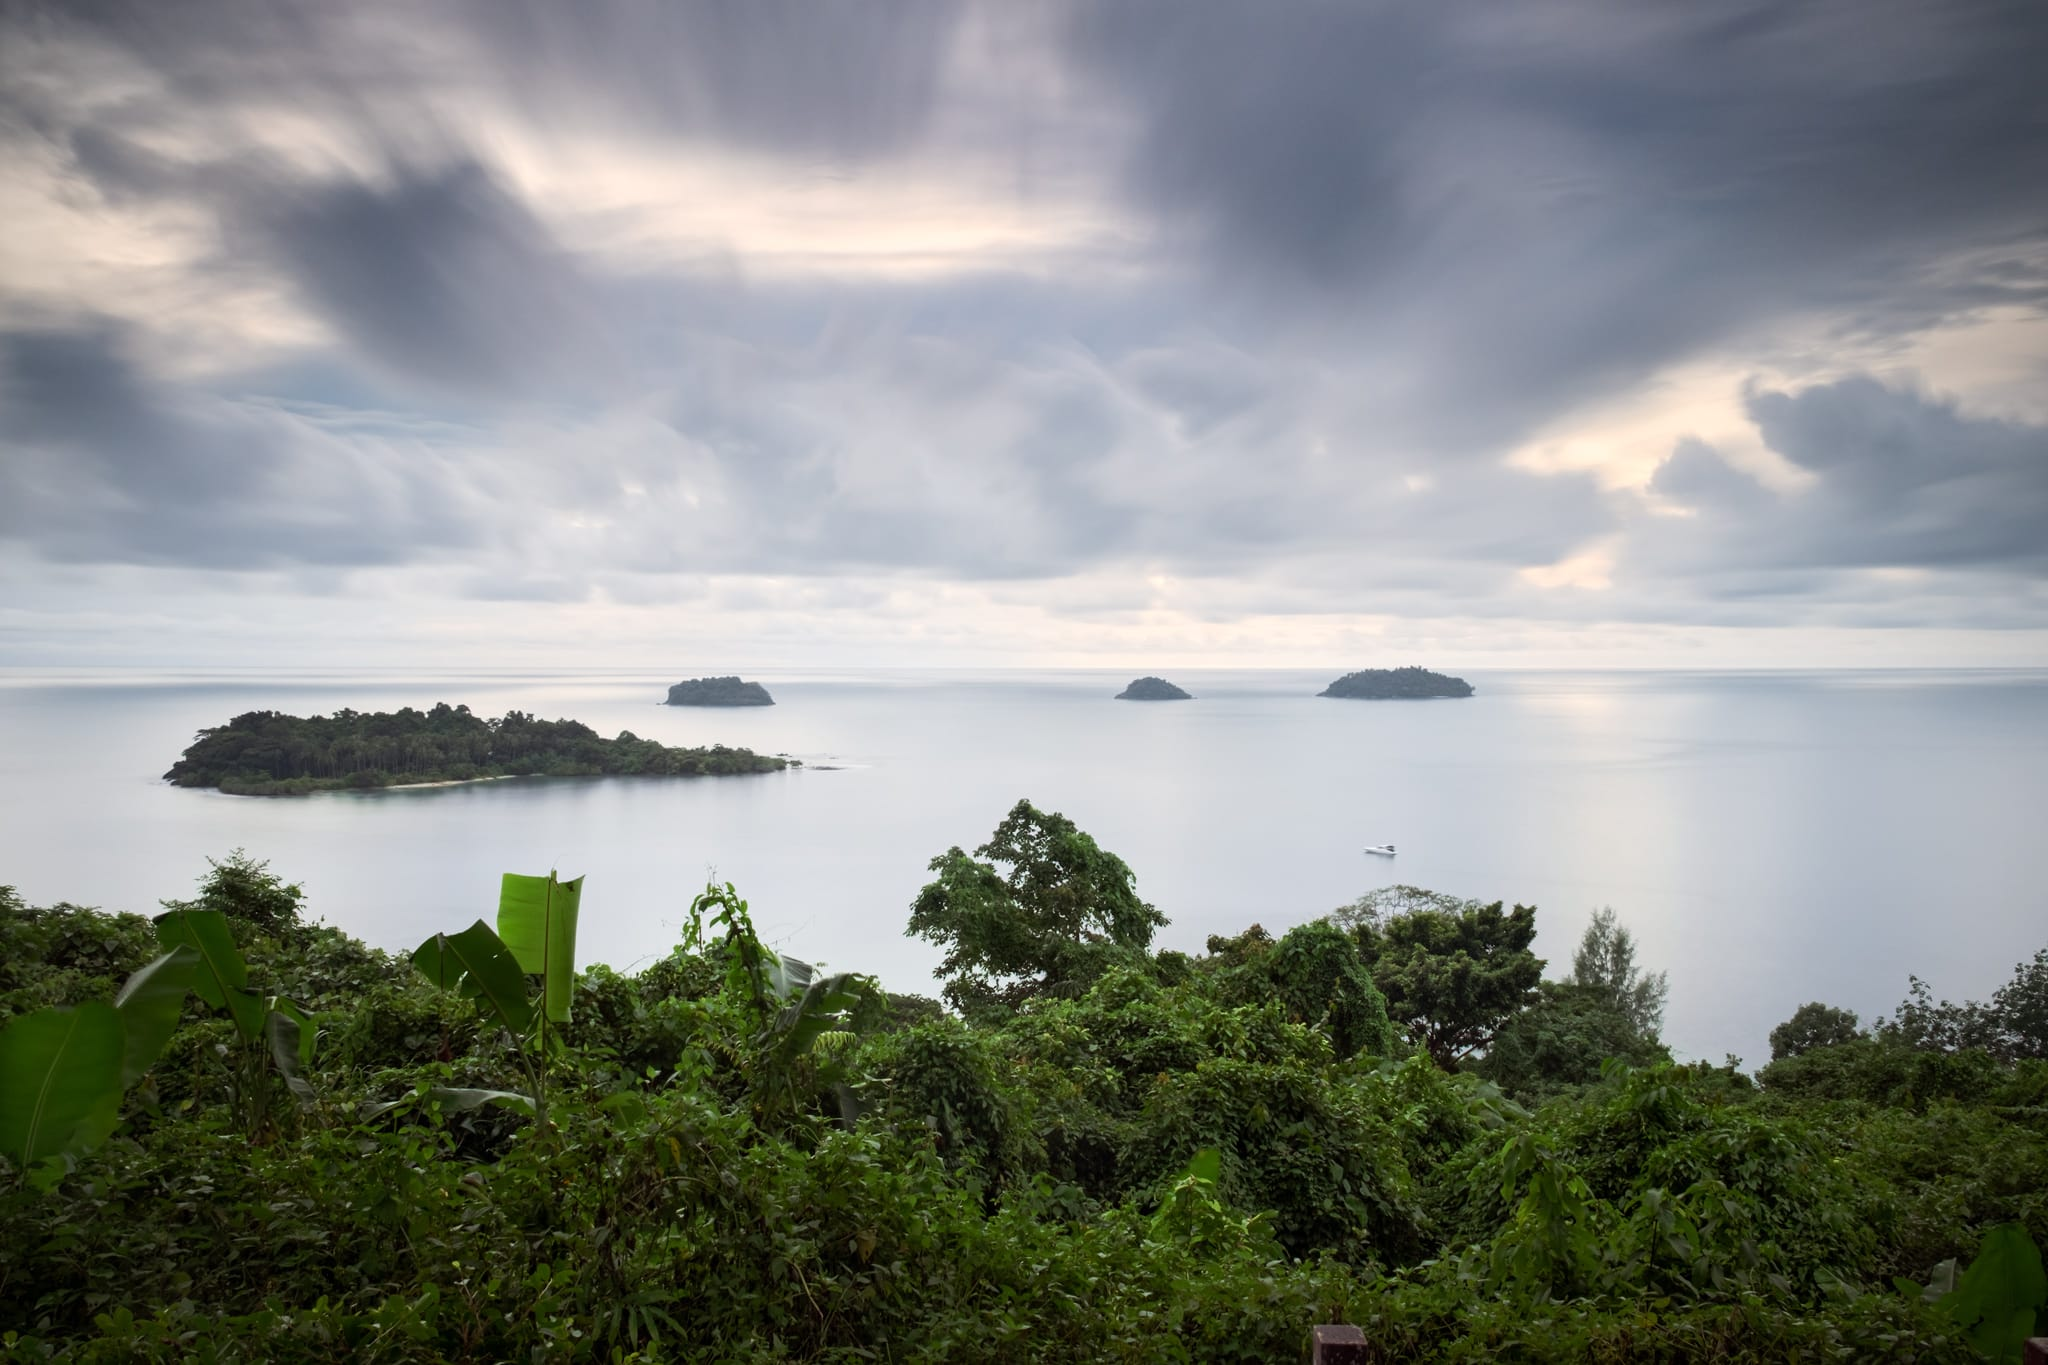 Long exposure taken from a high Seaview Point at Kaibae beach on Koh Chang island, Thailand.⁠ Clouds and sea look creamy. The 4 small islands near the horizon starting from the left are Koh Man Nai, Koh Man Nok, Koh Man Pli and Koh Man Yuak.